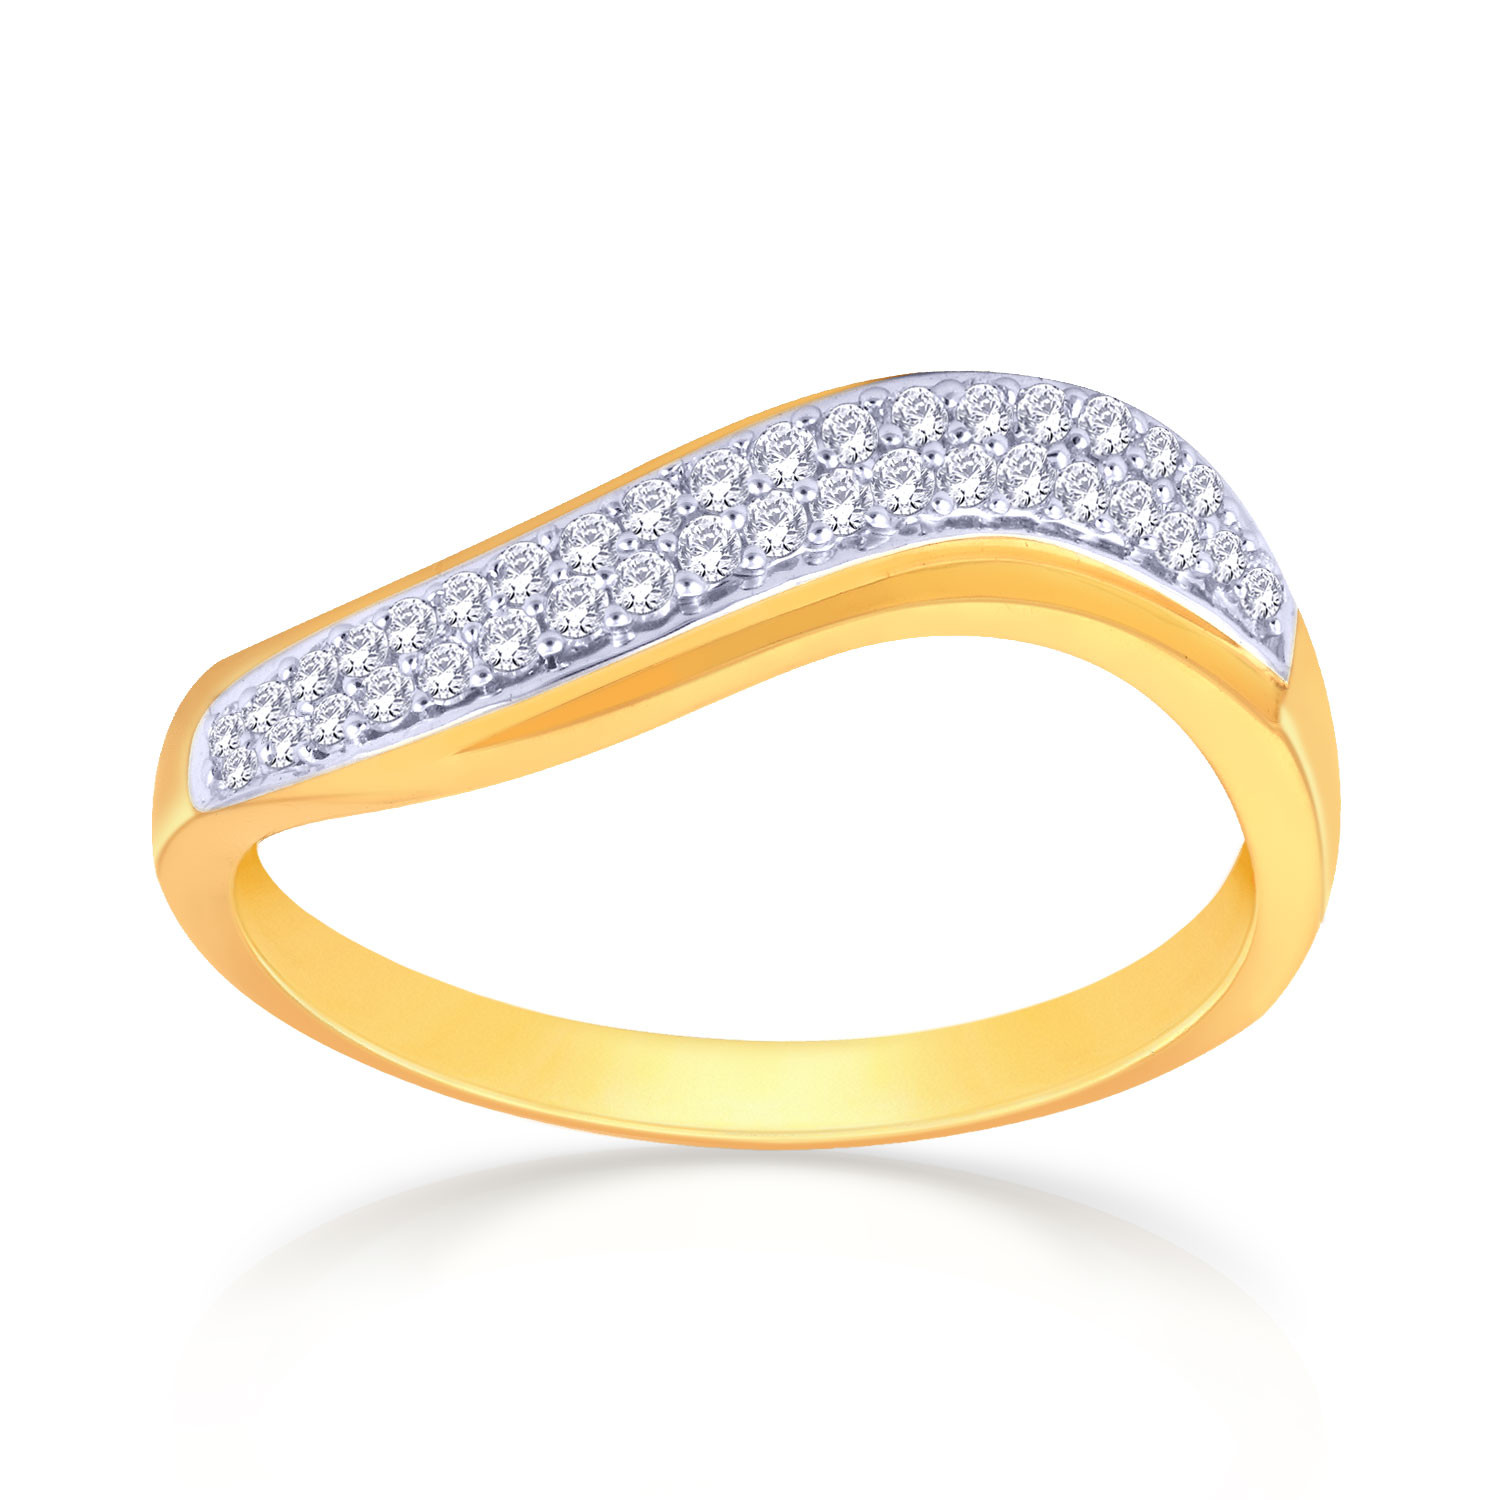 Best Place To Buy Diamond Ring In Usa